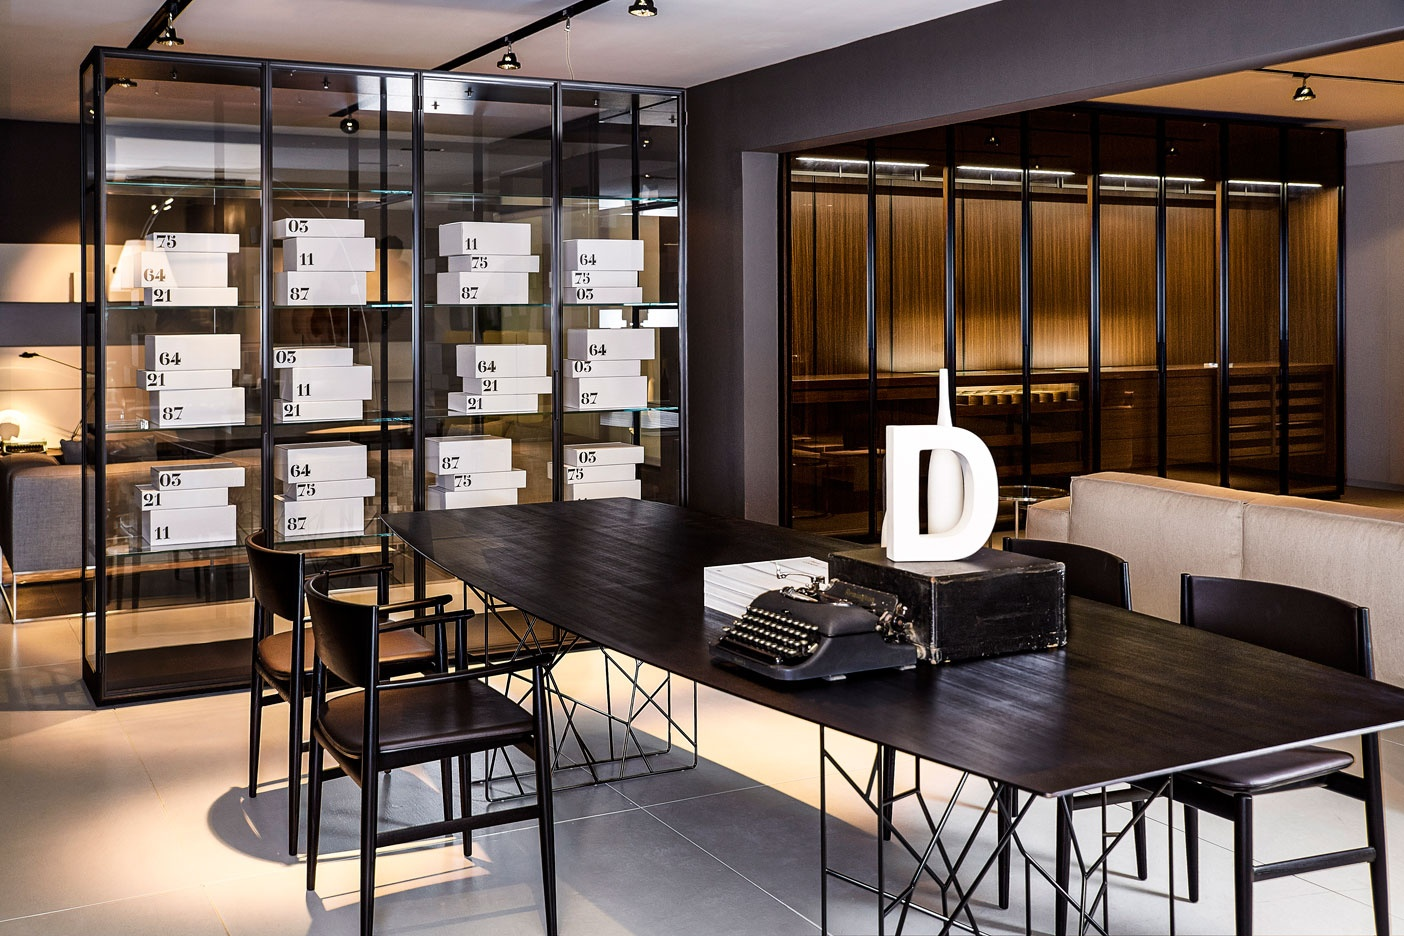 Dream interiors unrivaled luxury for interior spaces for Furniture and design stores